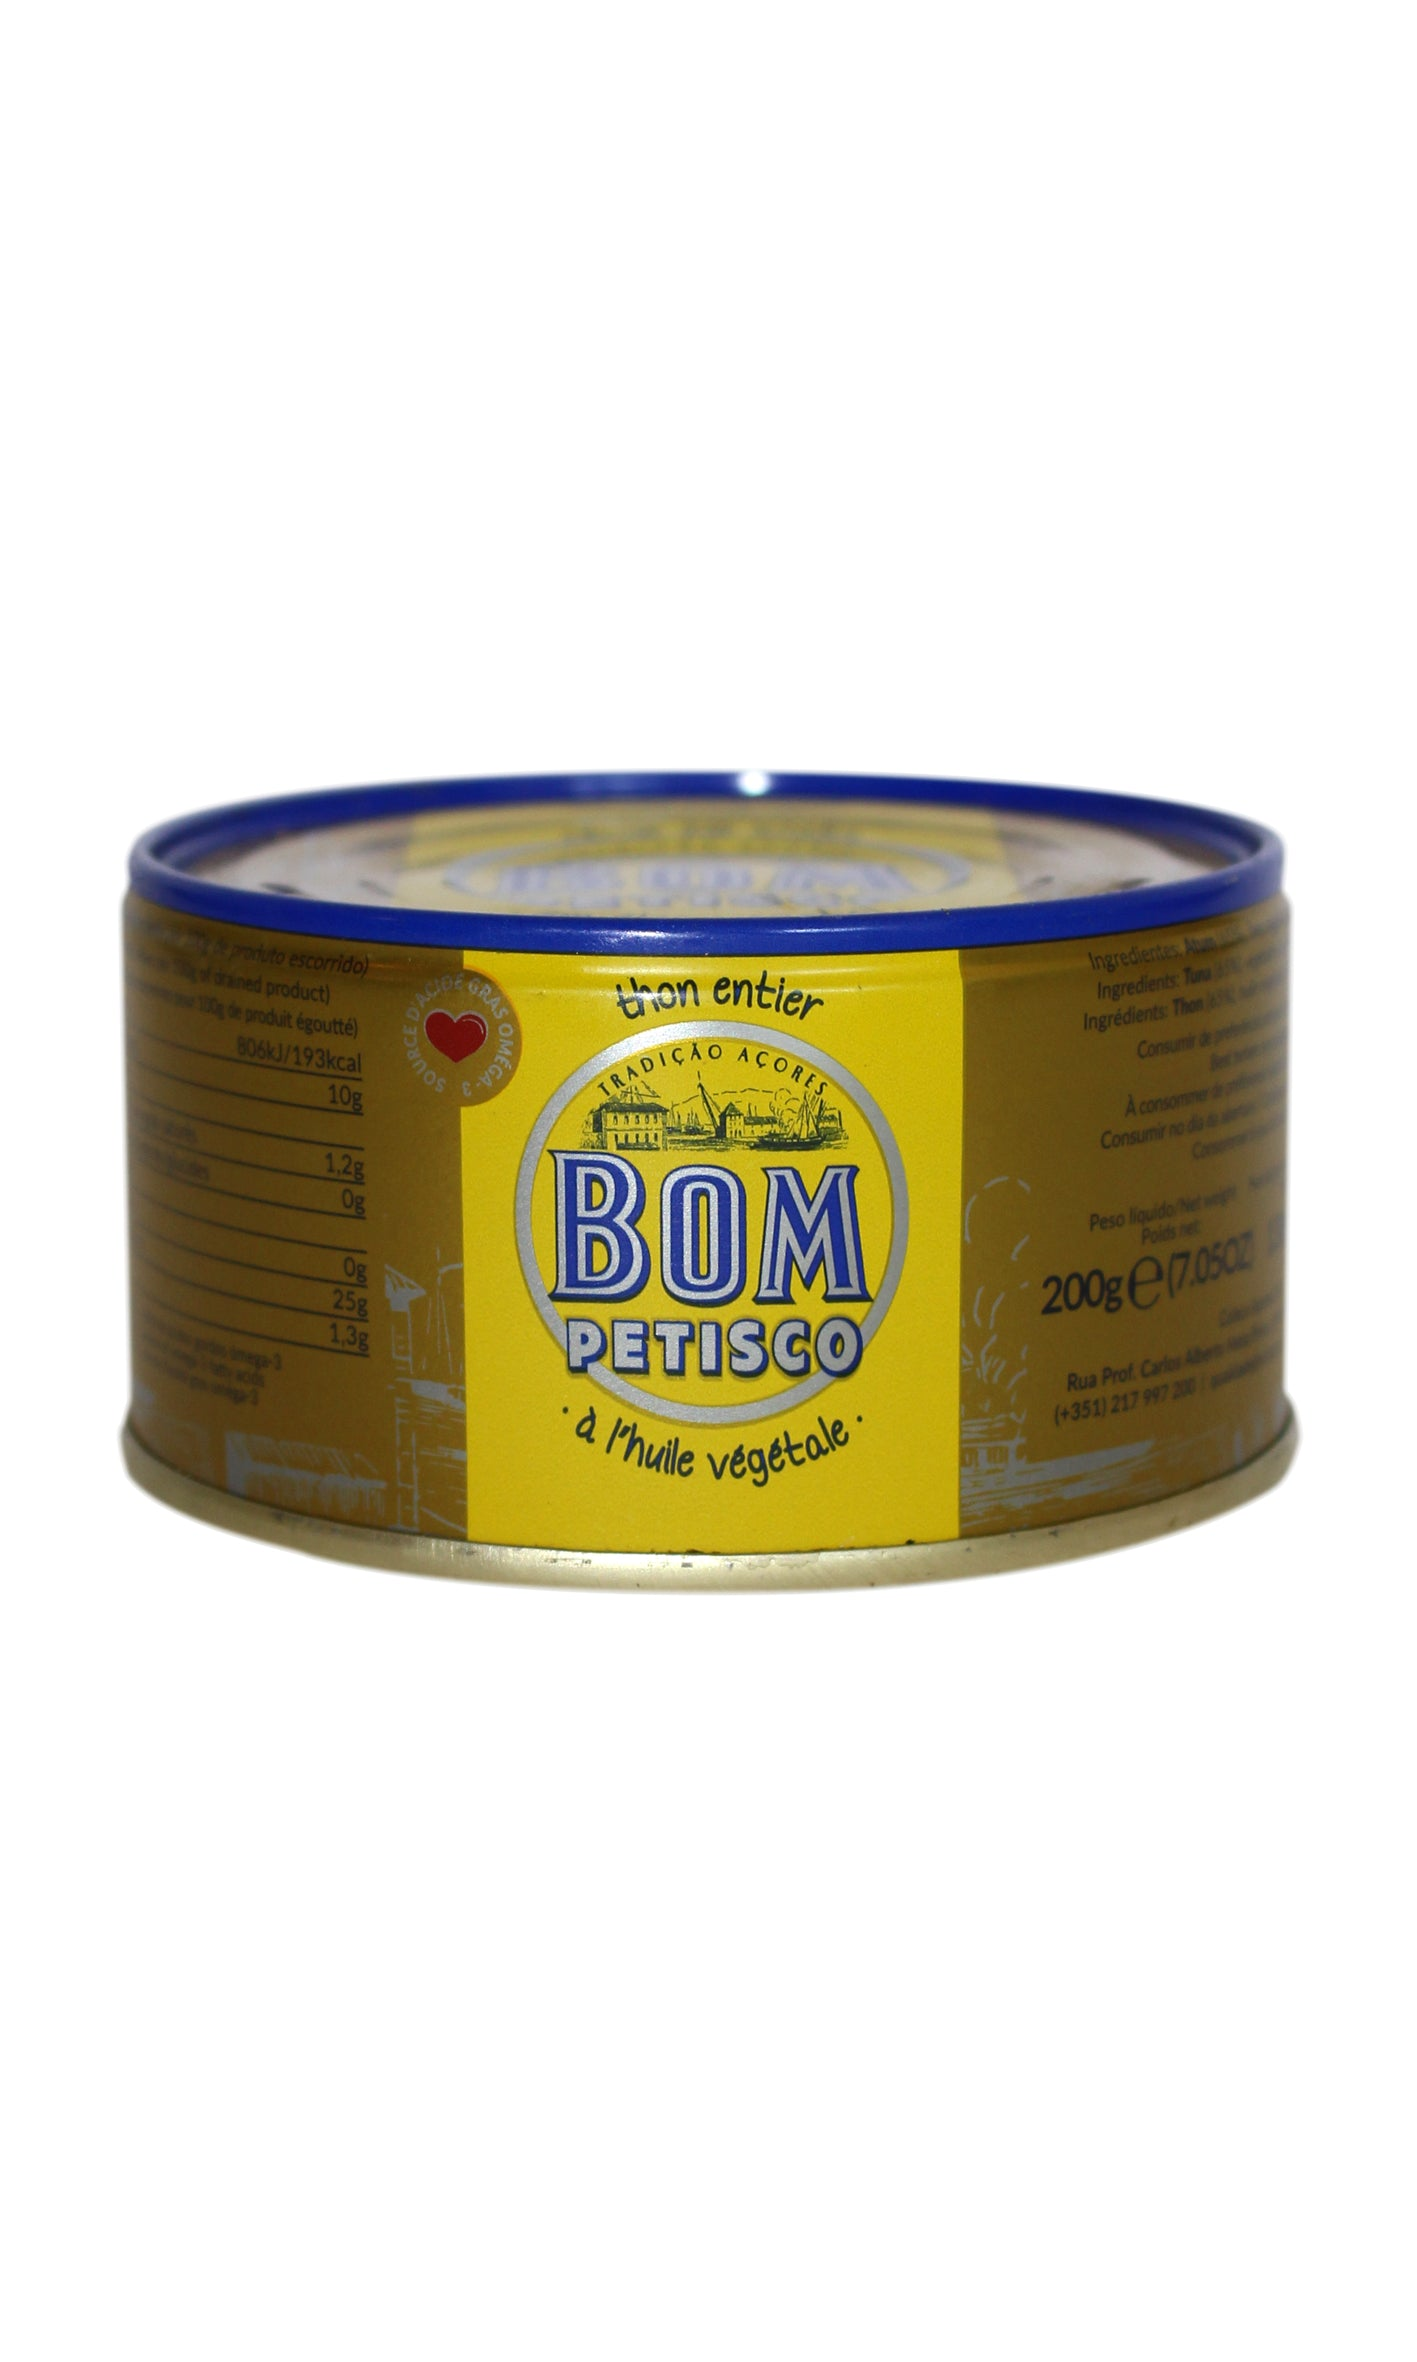 Bom Petisco: Tuna in Vegetable Oil - 200g